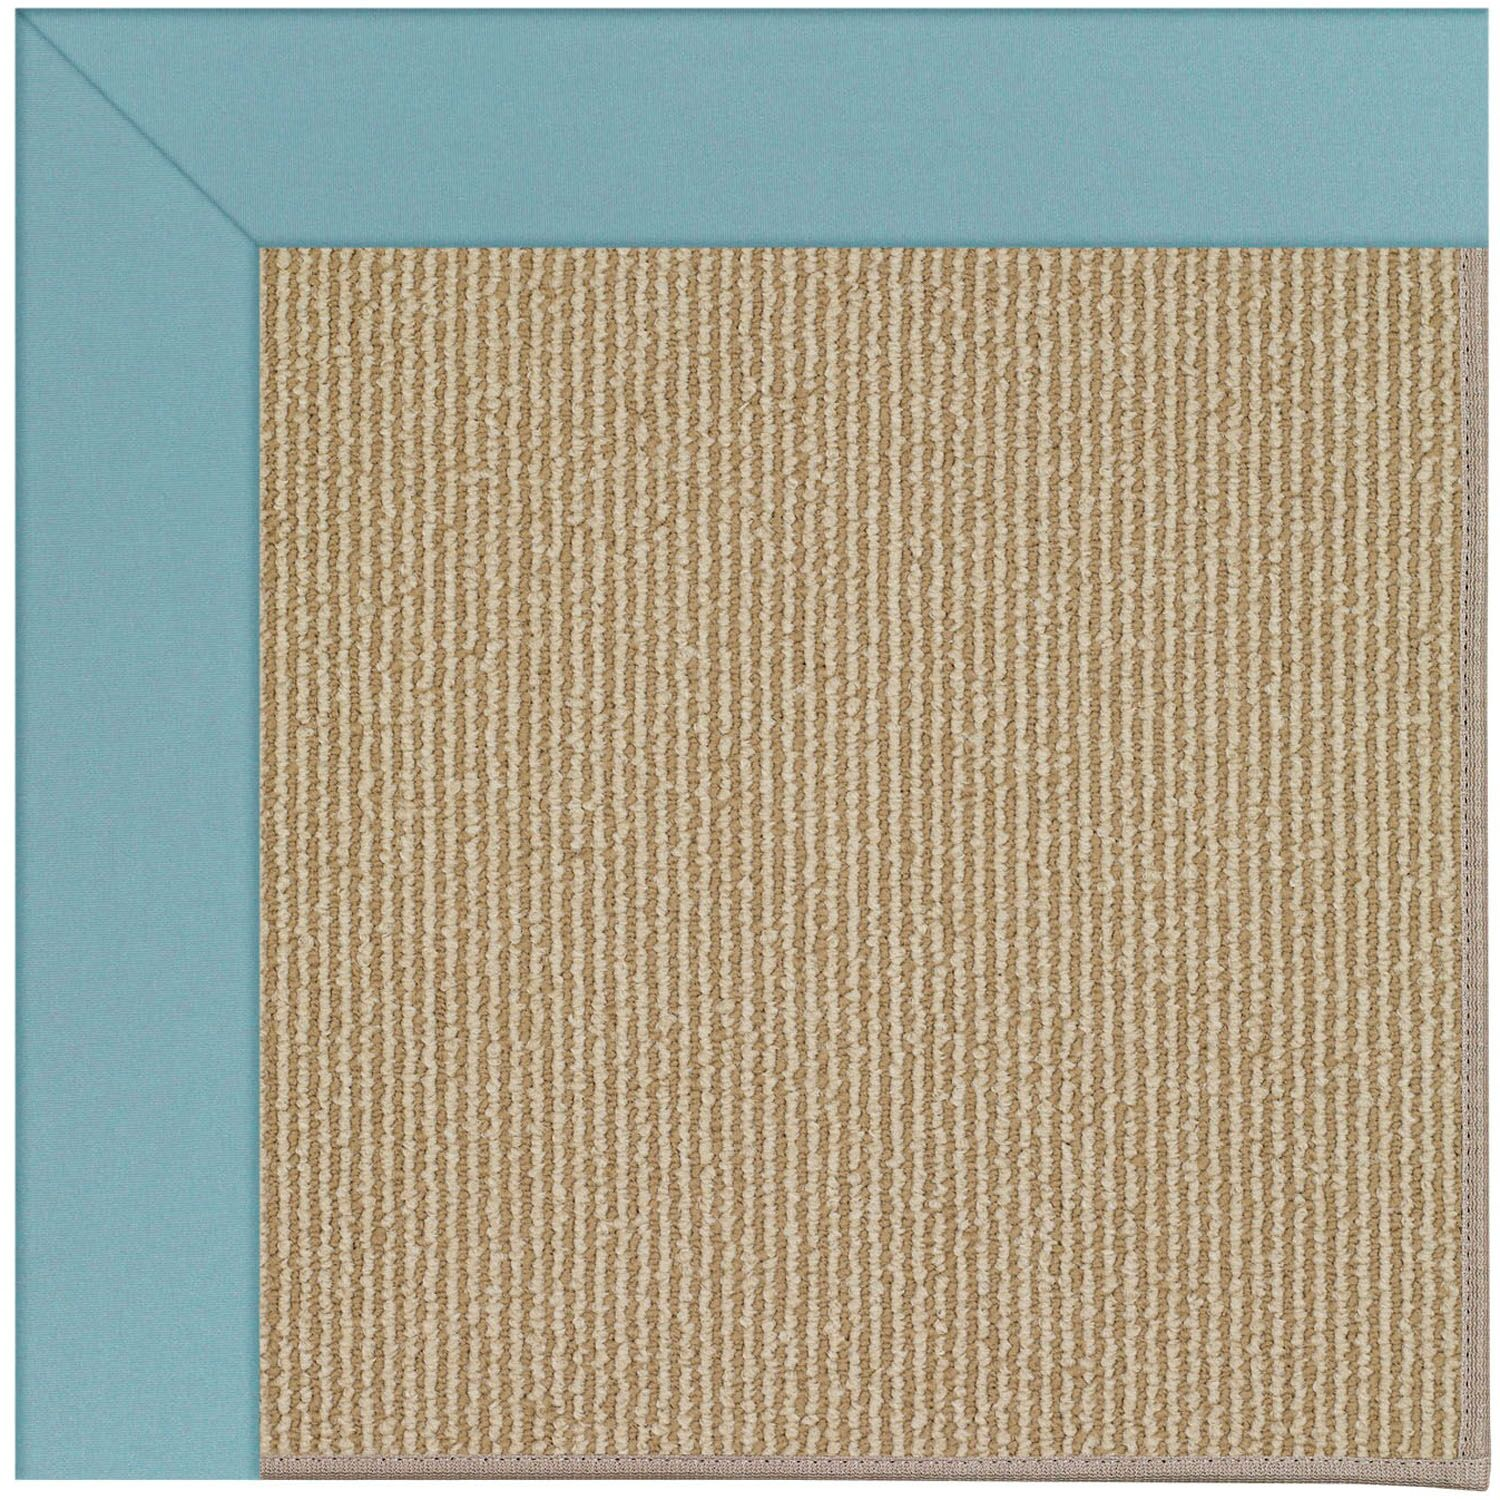 Lisle Machine Tufted Bright Blue/Brown Indoor/Outdoor Area Rug Rug Size: Square 10'